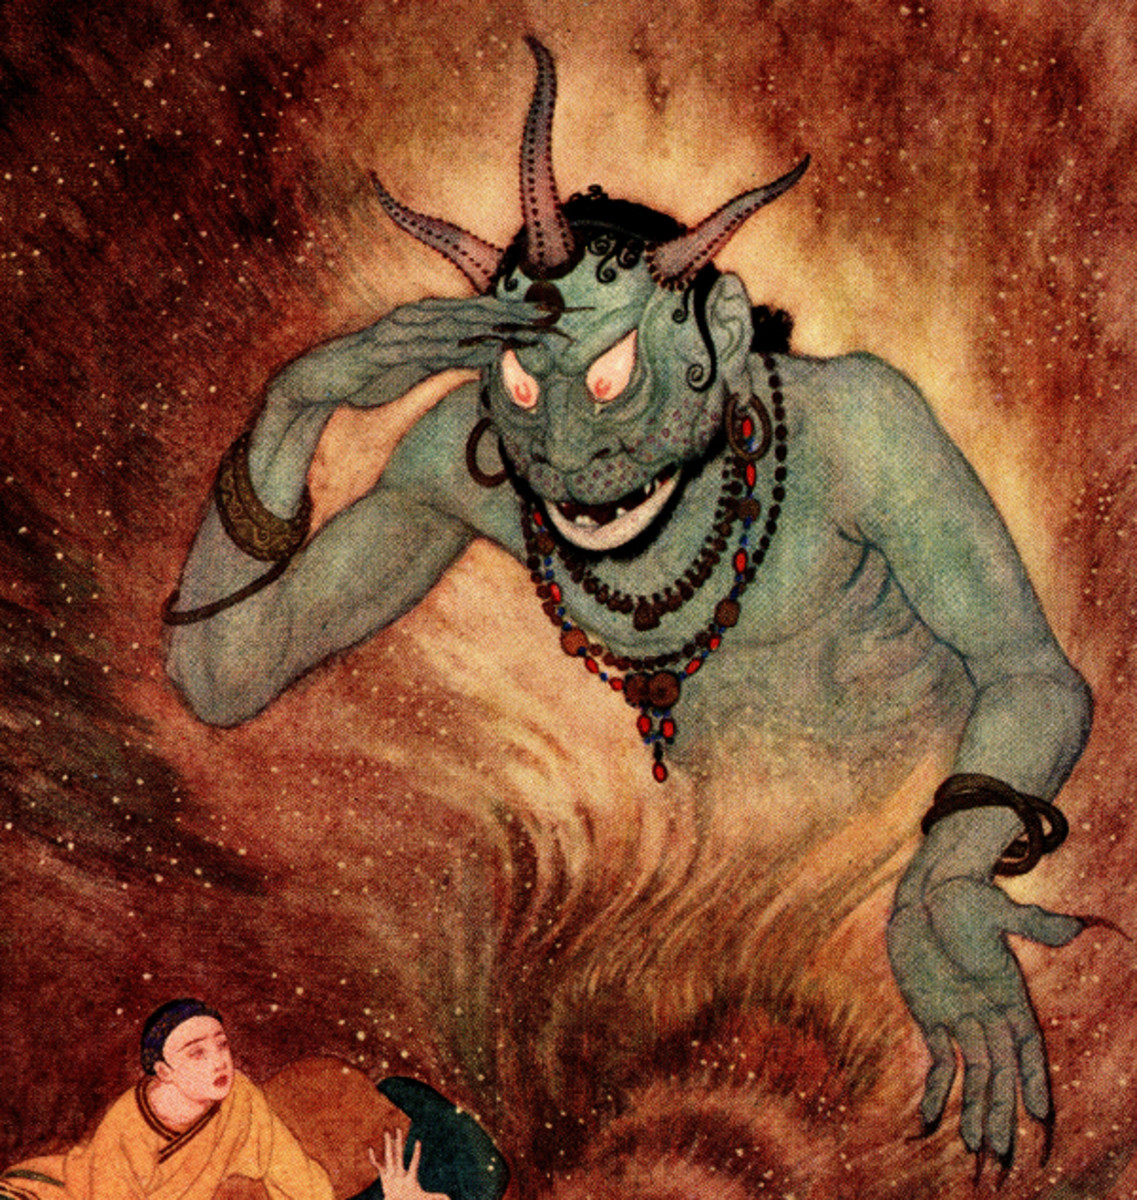 "Here we show a portion of 'Aladdin and the Efrite' - it is from the suite by Edmund Dulac published in ""Sindbad the Sailor and Other Stories from The Arabian Nights"" (1914)."